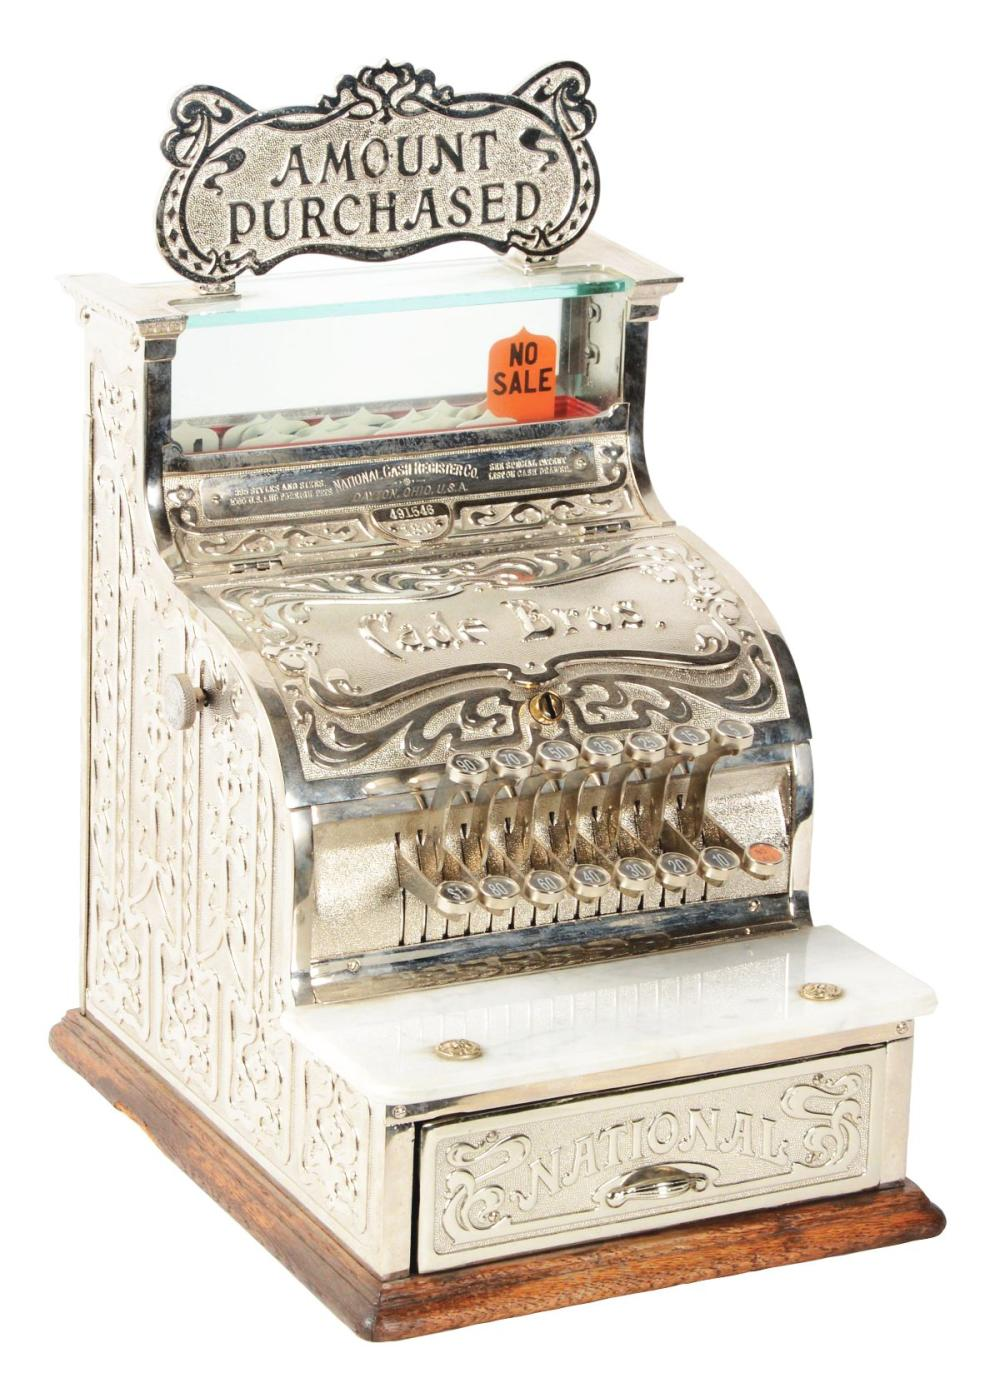 NATIONAL CASH REGISTER CO. MODEL #130.